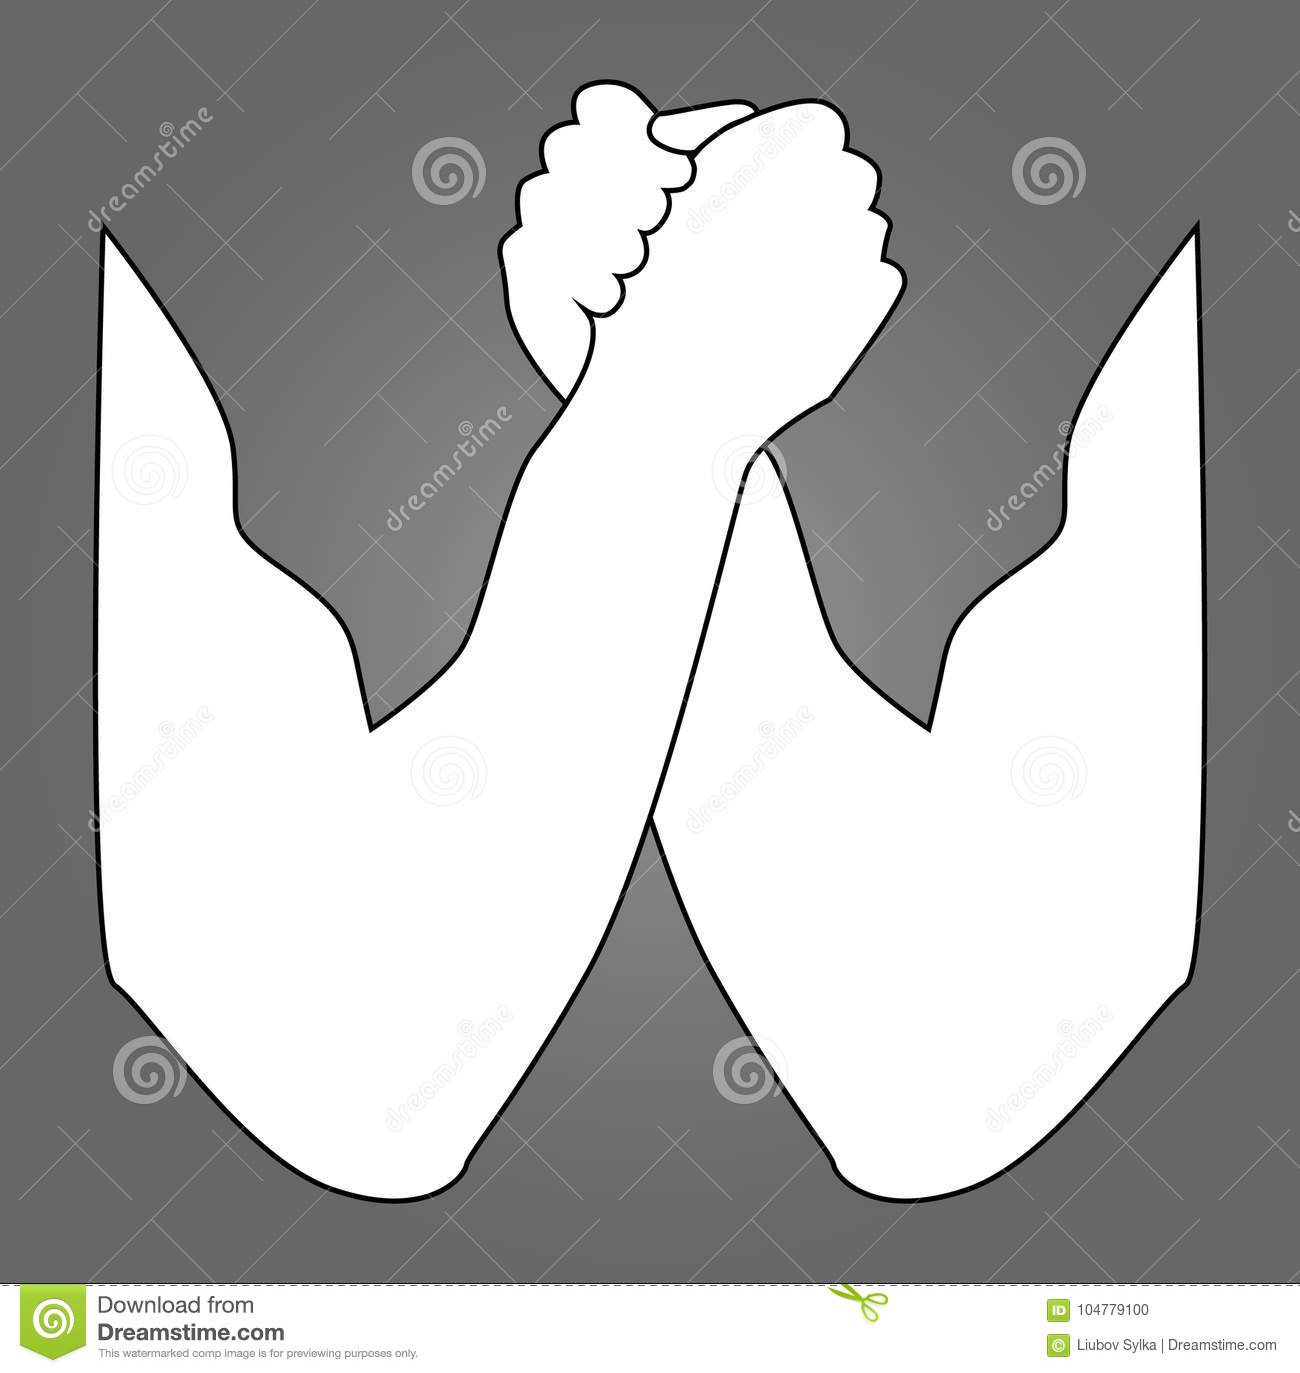 Arm wrestling silhouette. Arm wrestling, hands, vector illustration, for logo, your design. Two human hands holding each other vec